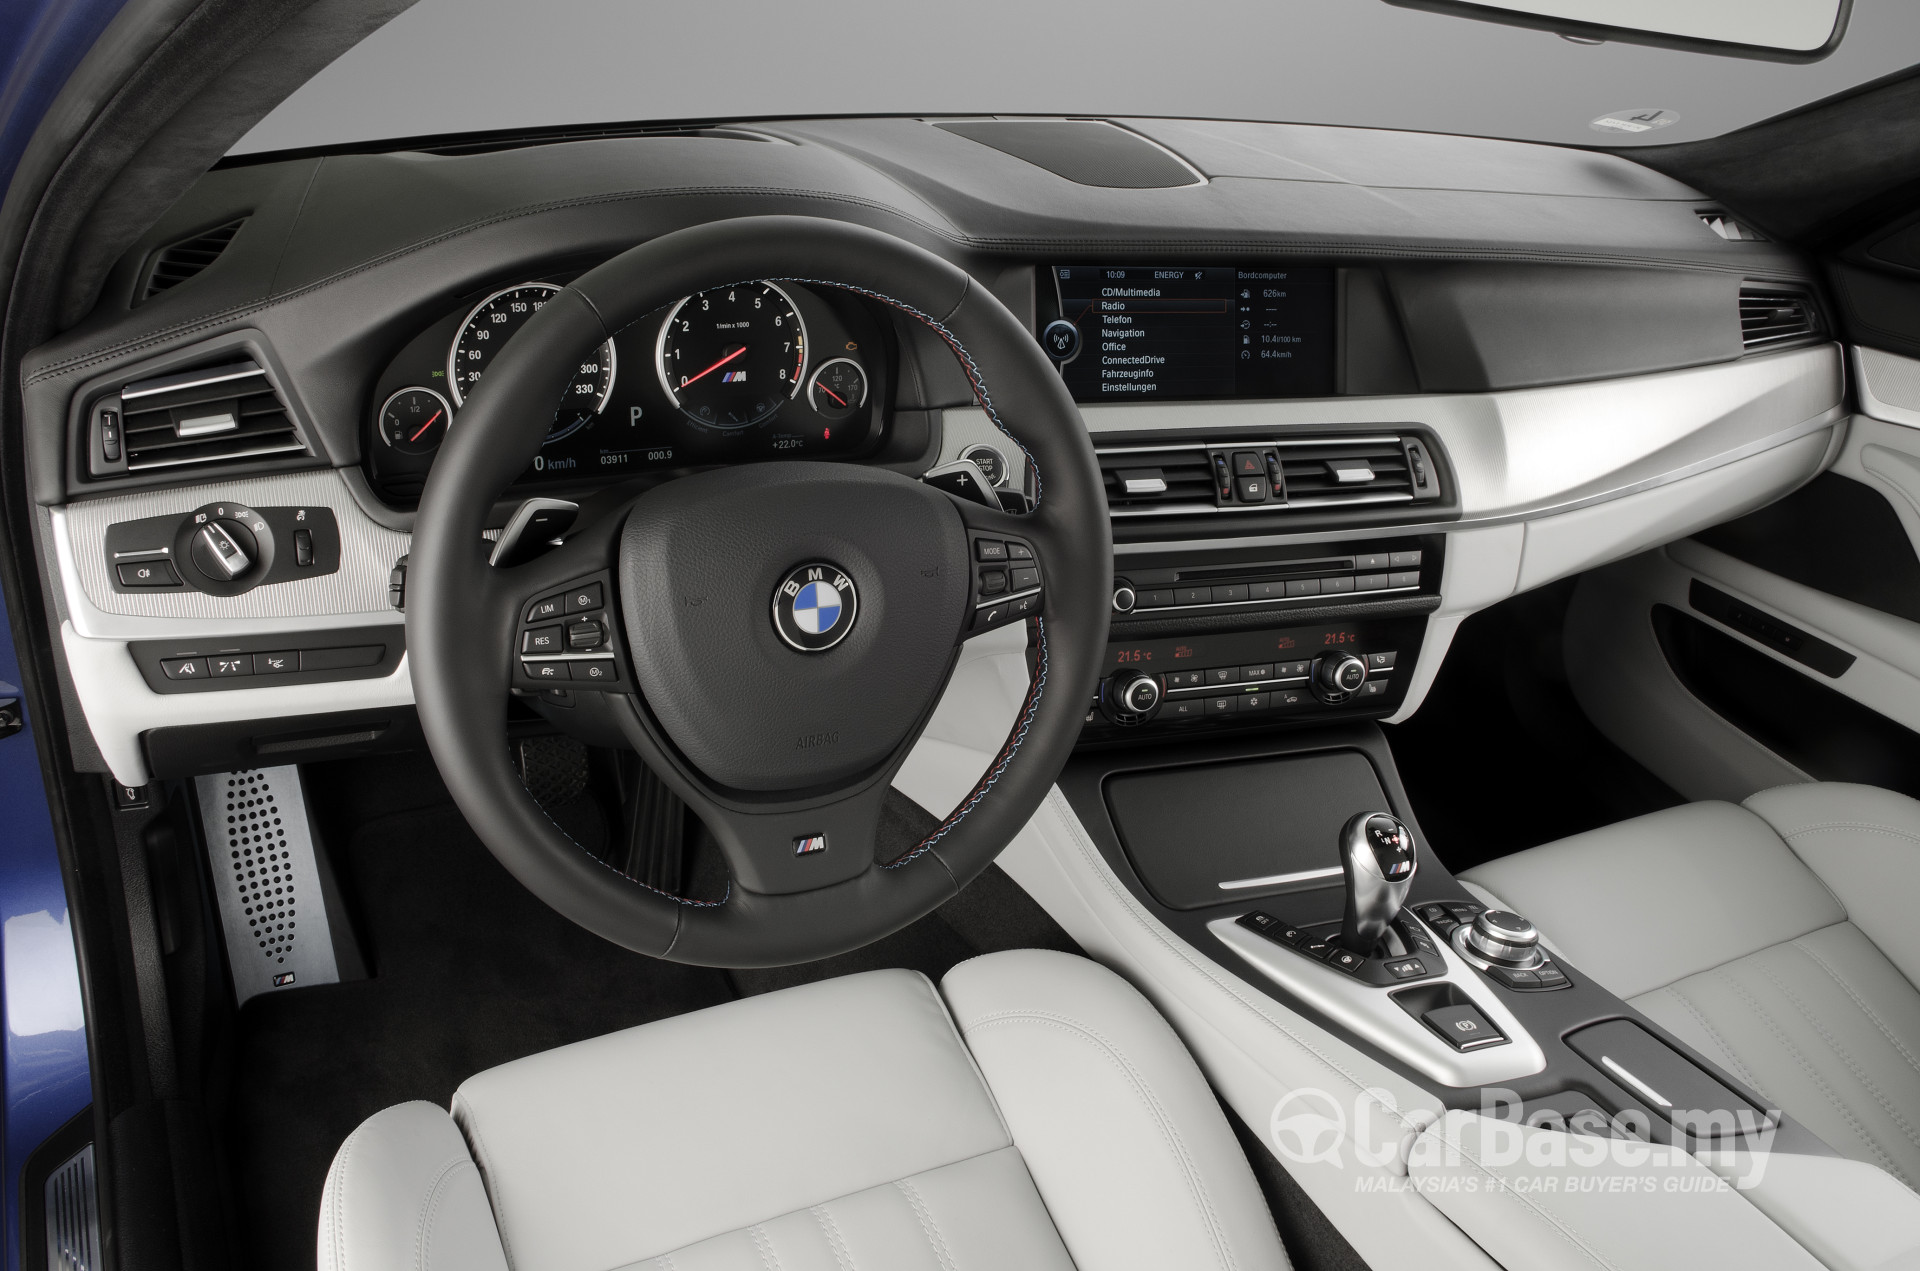 Bmw M5 F10 Facelift 2013 Interior Image 6487 In Malaysia Reviews Specs Prices